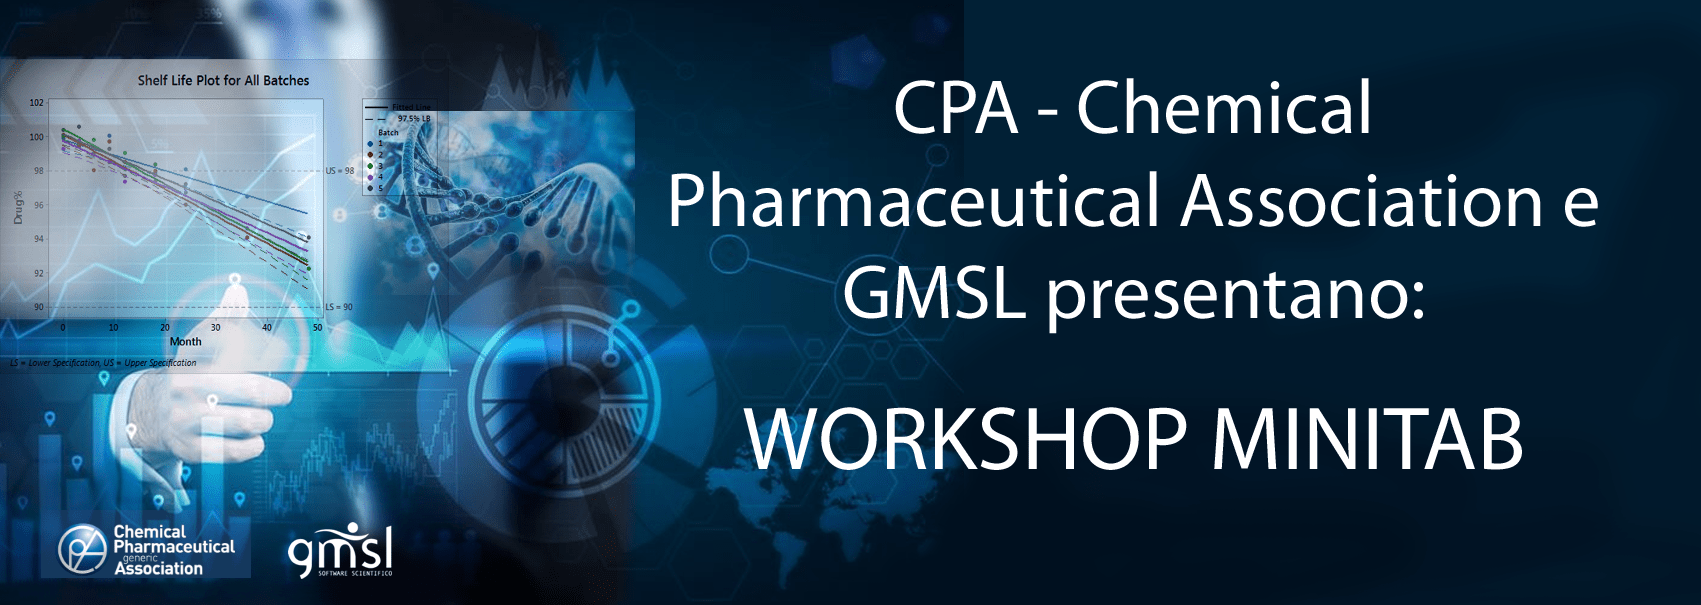 CPA Minitab| CPA Chemical Pharmaceutical Association e GMSL: Workshop Minitab Mixture Design